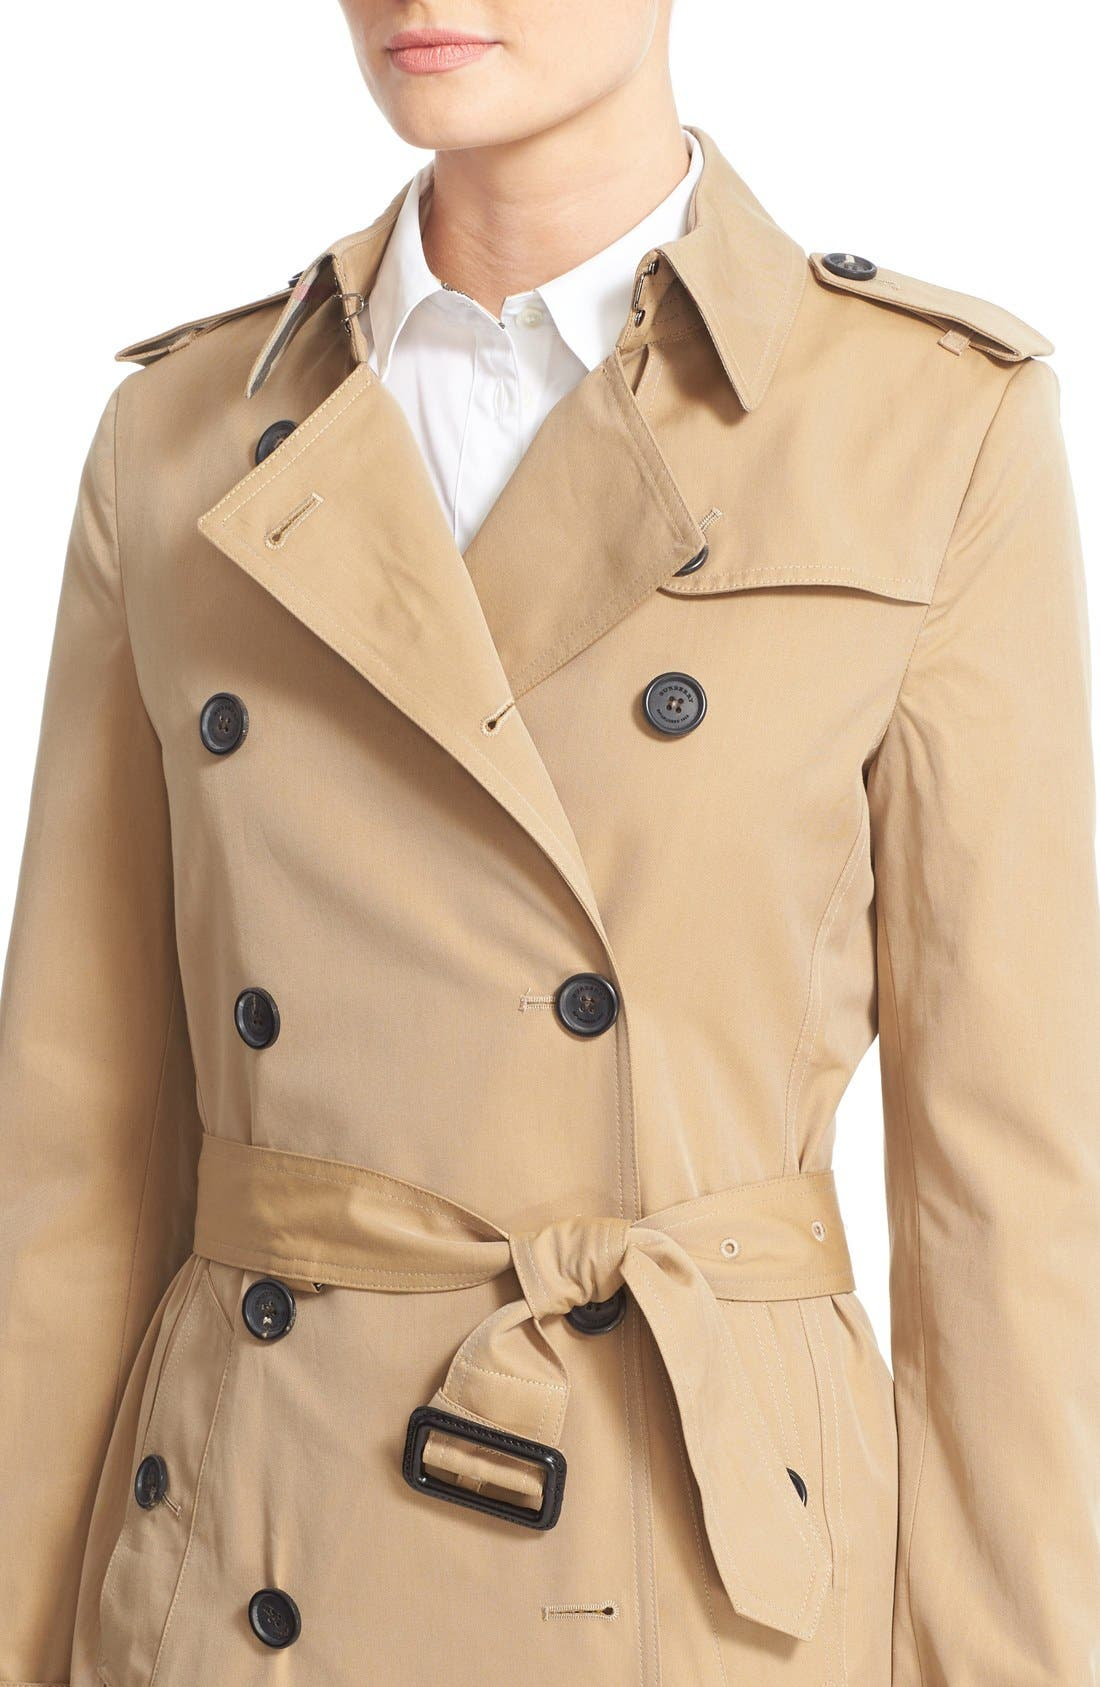 Kensington Short Trench Coat,                             Alternate thumbnail 12, color,                             HONEY